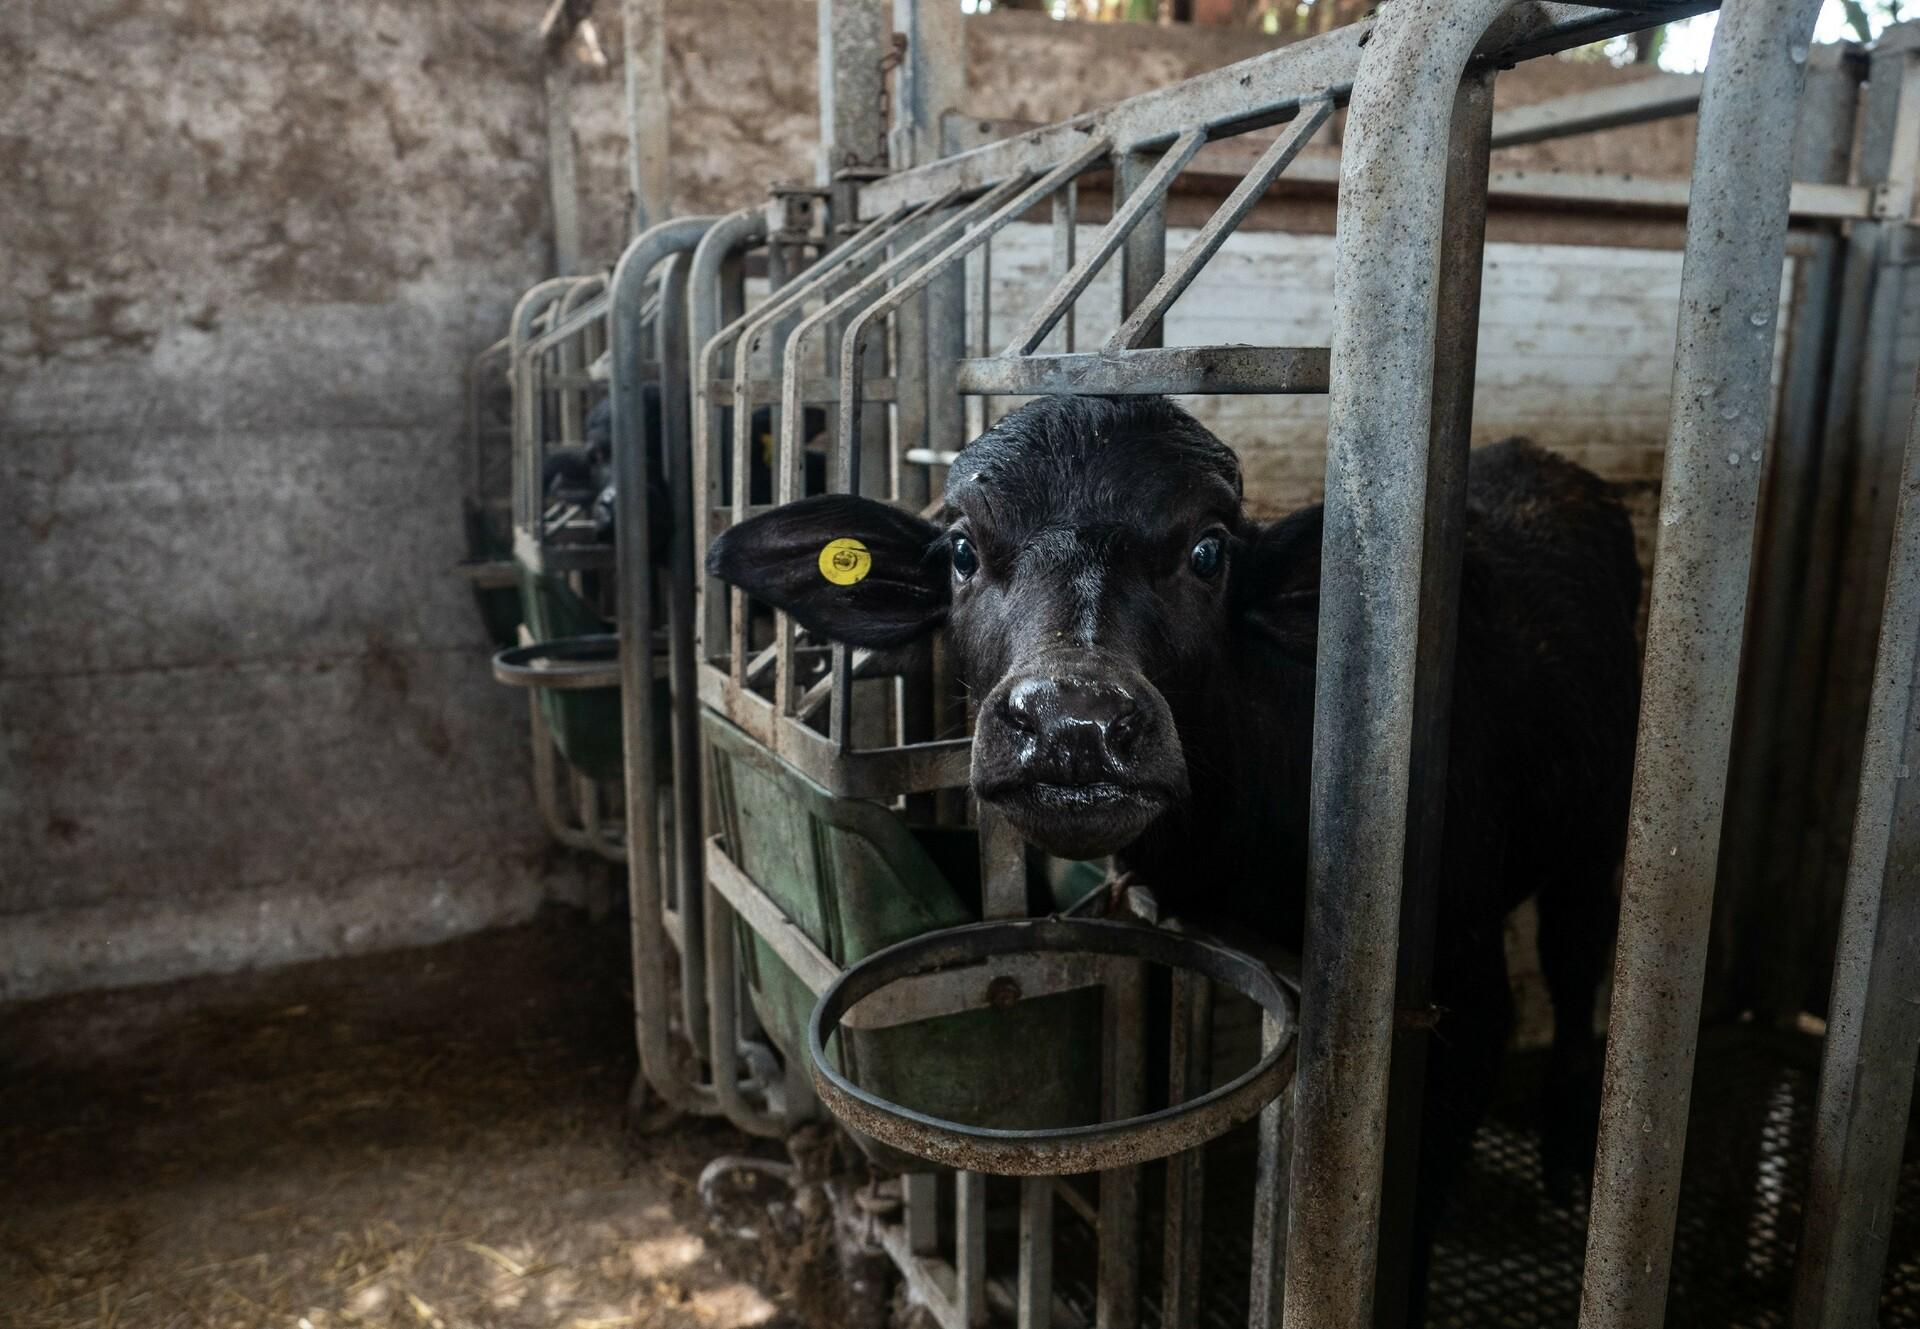 Buffalo calves suffer from extreme cruelty